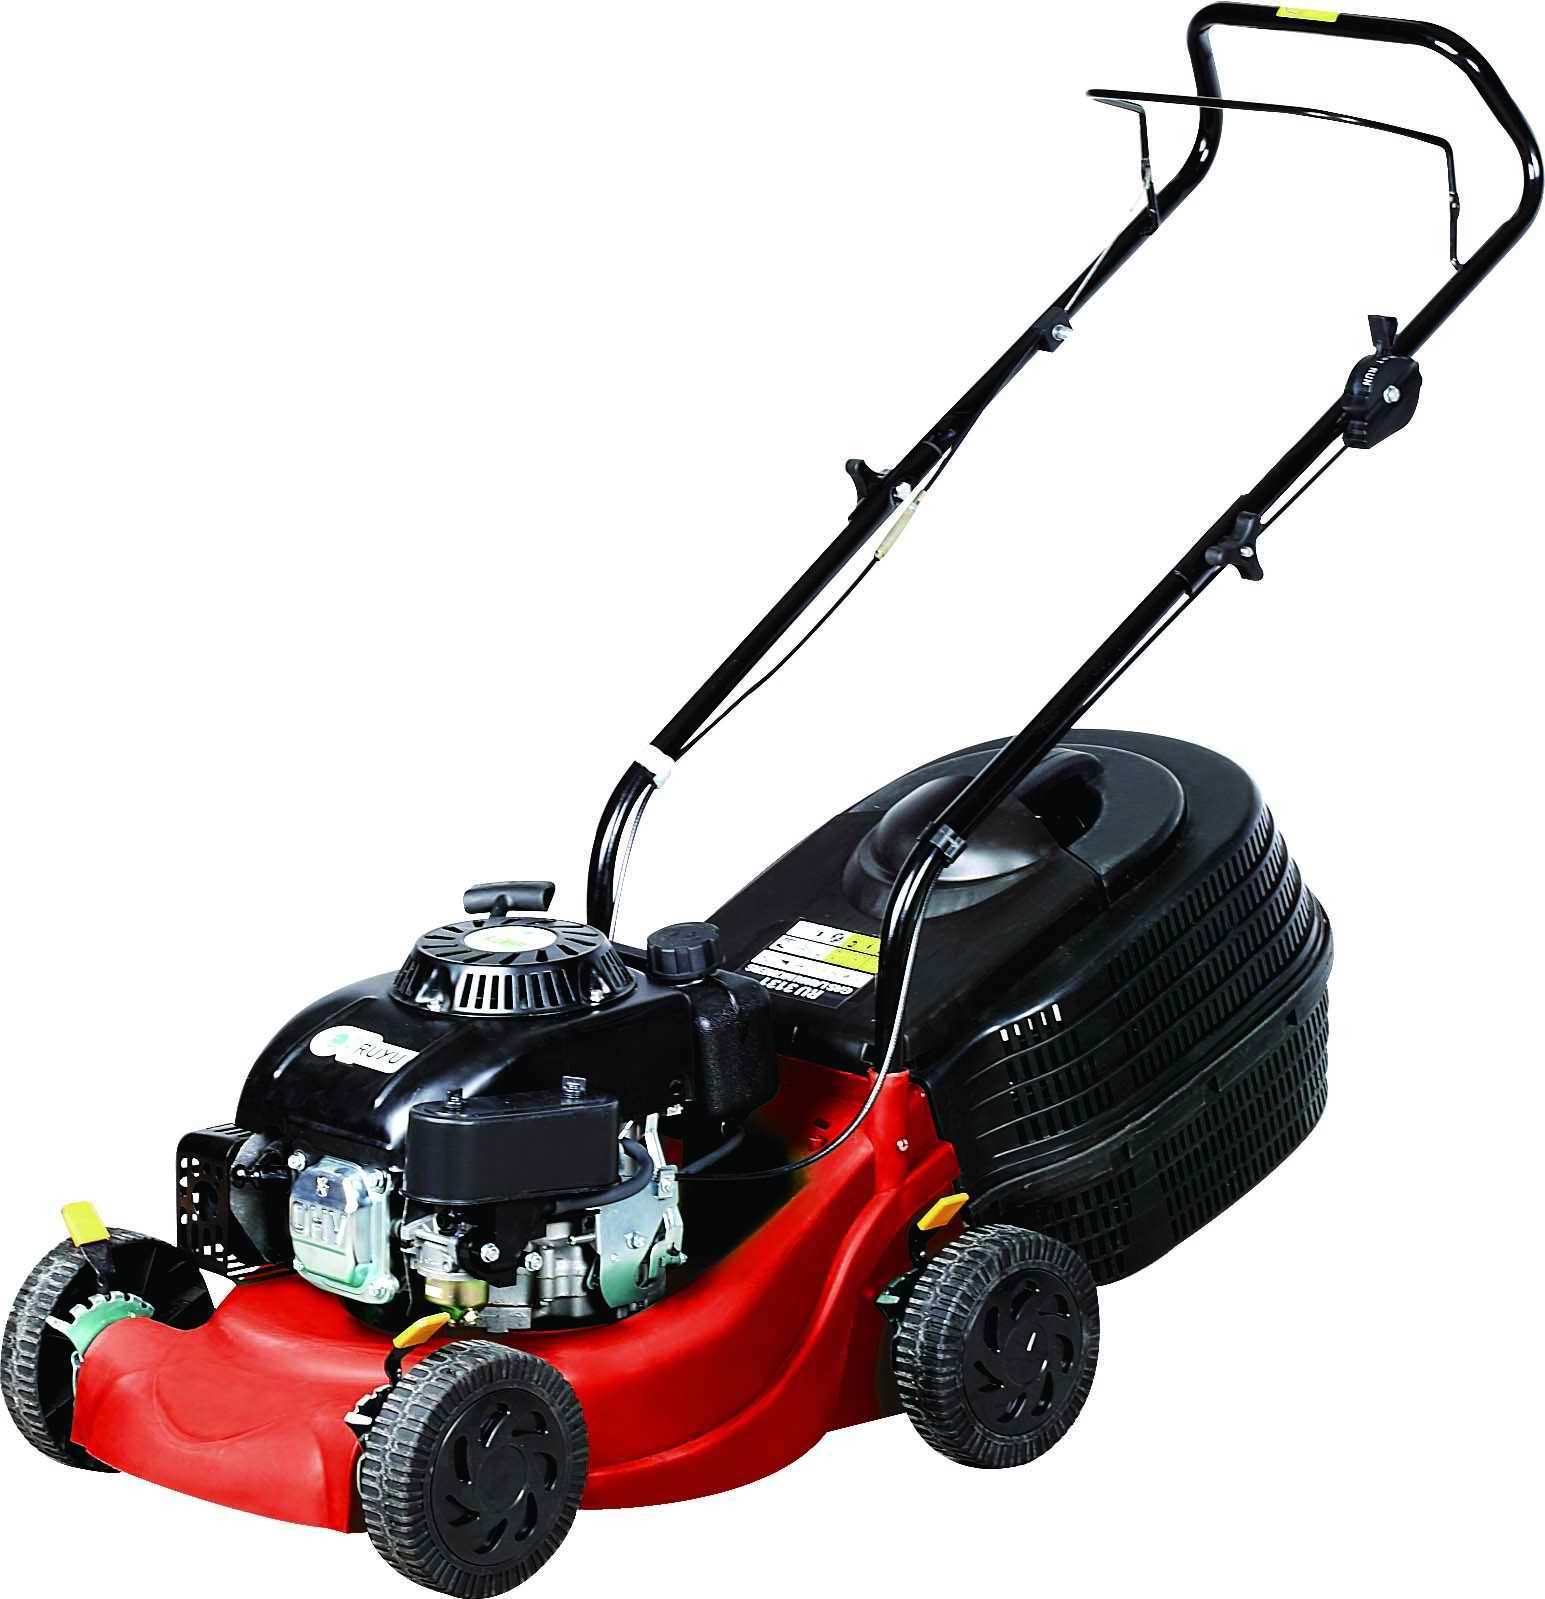 Top grass cutting ideas and tools